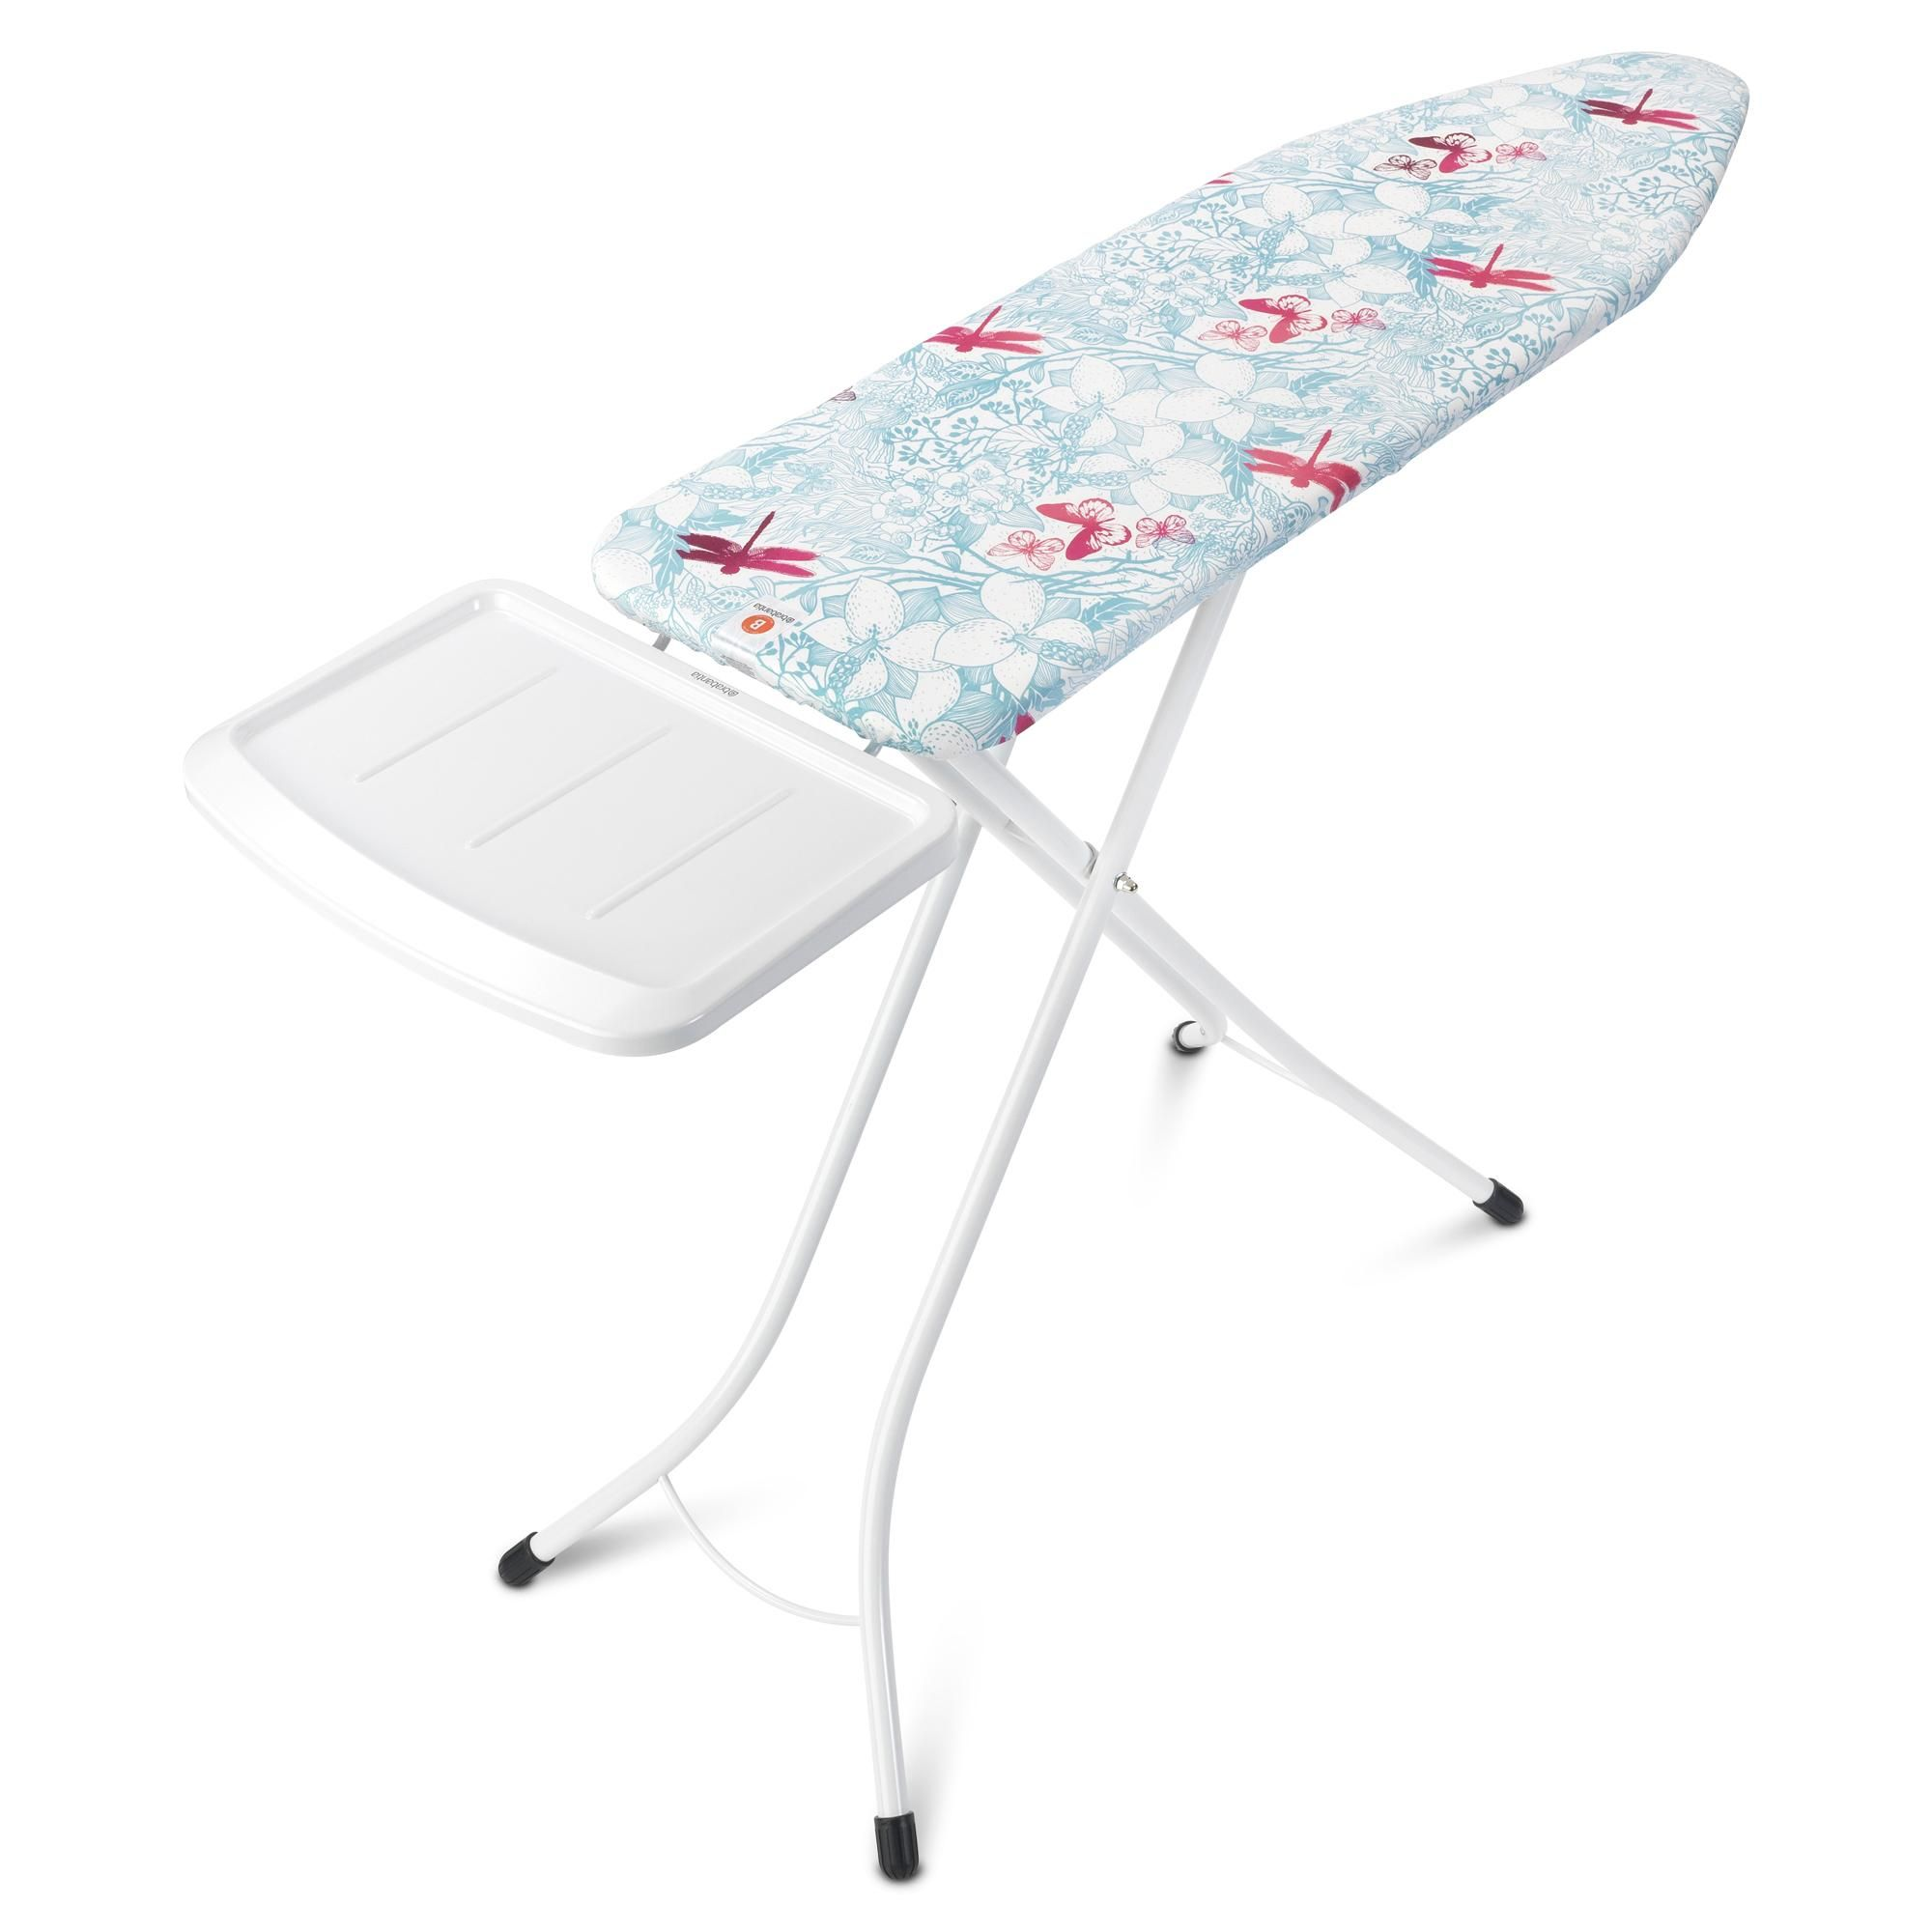 Brabantia Botanical Ironing Board With Solid Steam Unit Holder In